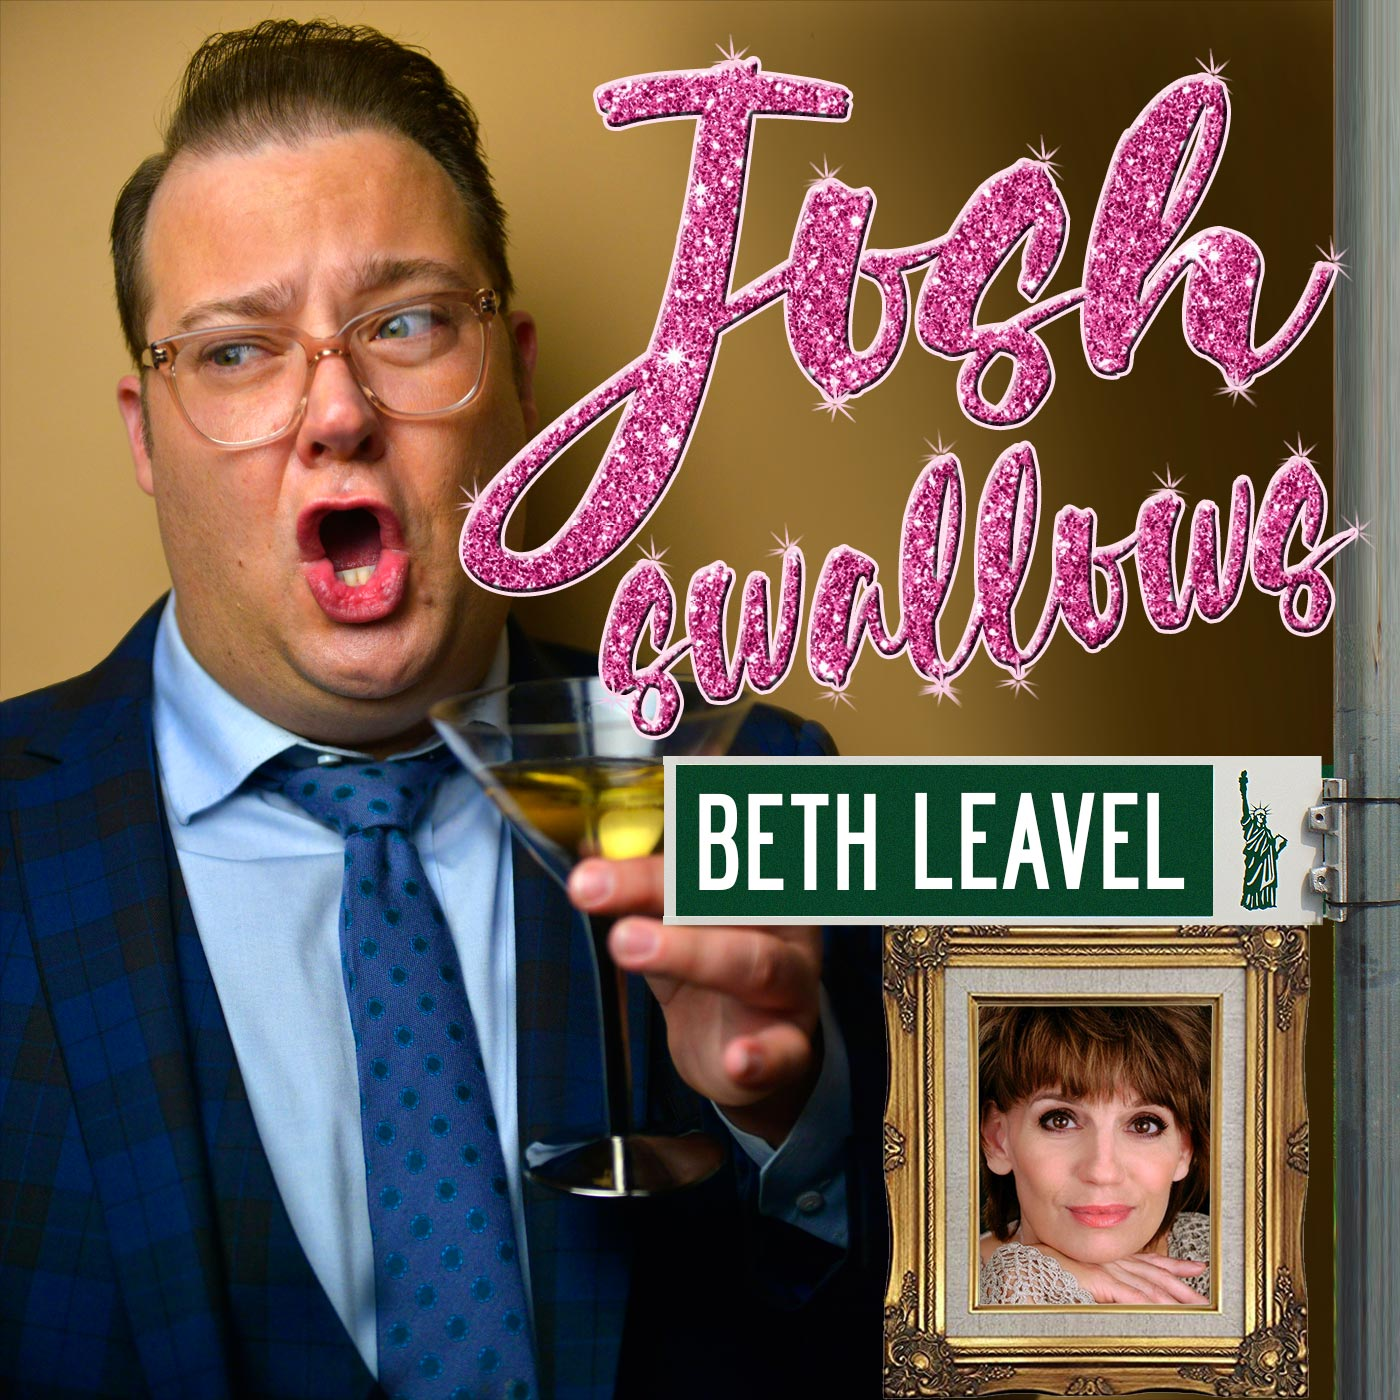 Josh Swallows Broadway Ep24 - Beth Leavel, it's roaches! Welcome to New York!